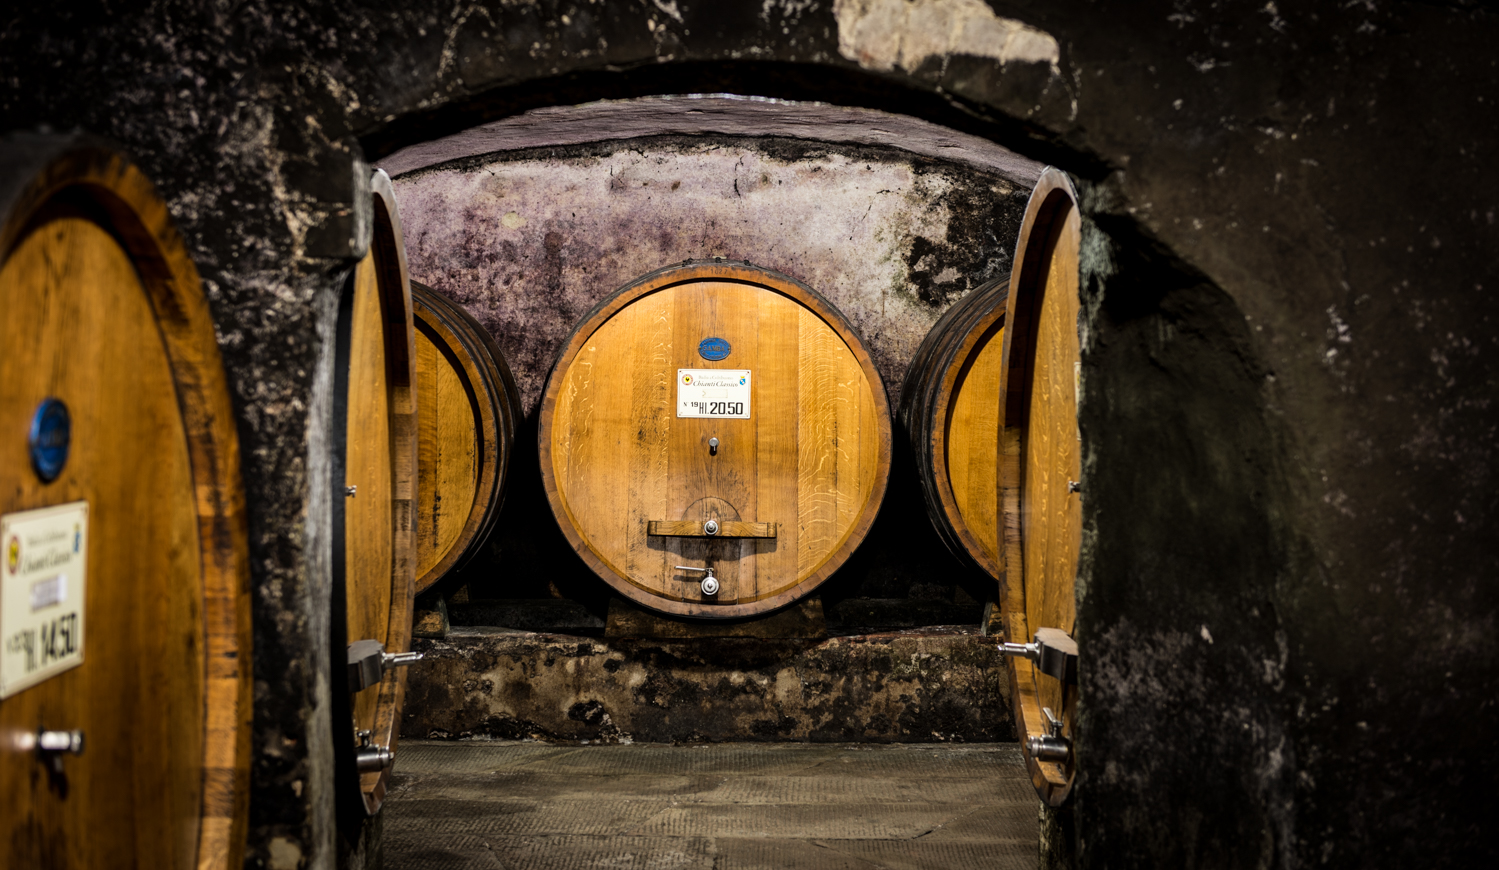 Italy : Tuscany : In the cellar at Badia a Coltibuono